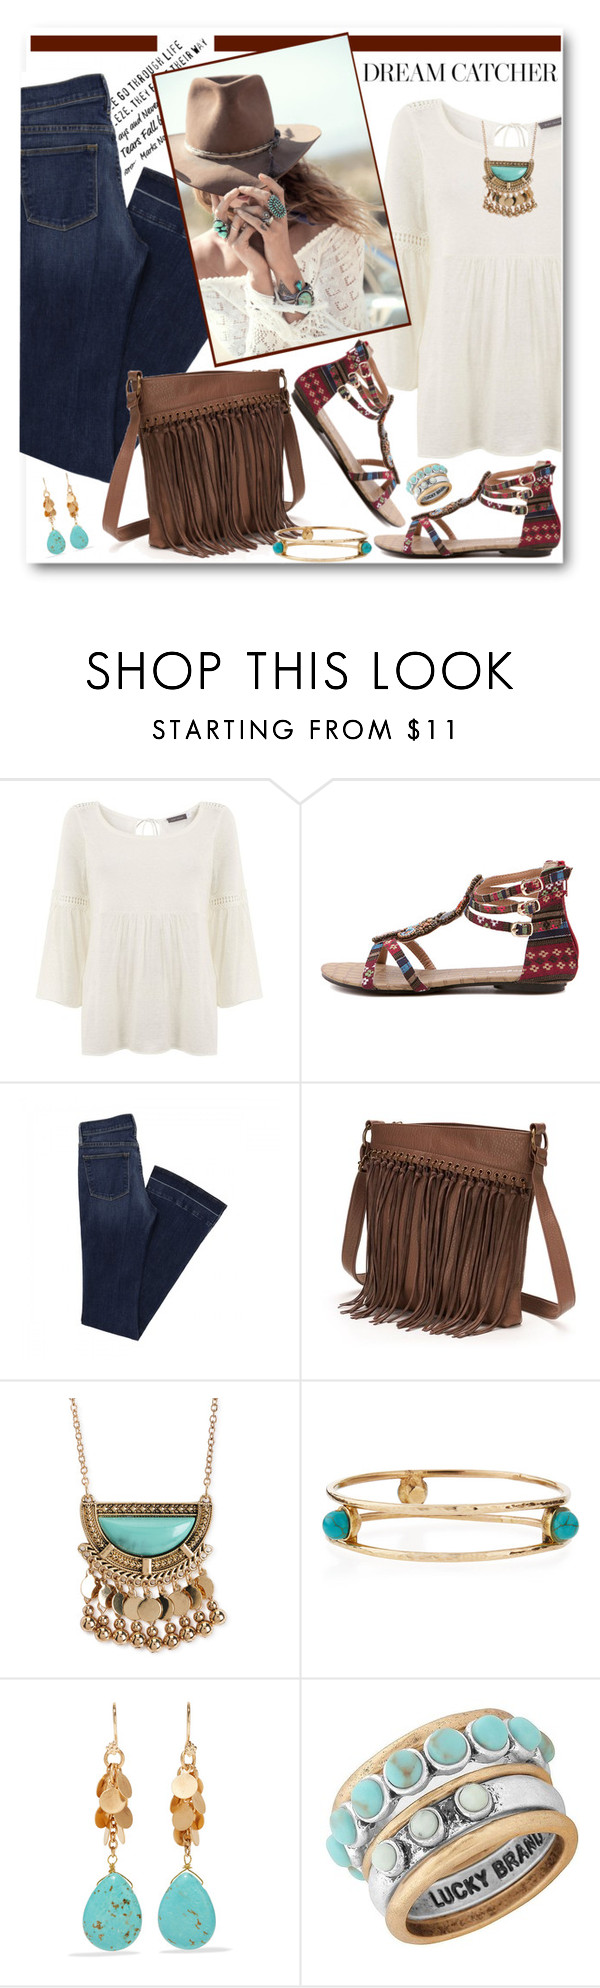 """Dream Catcher"" by brendariley-1 ❤ liked on Polyvore featuring Mint Velvet, Spell & the Gypsy Collective, SONOMA Goods for Life, Aéropostale, Ashley Pittman, Kenneth Jay Lane and Lucky Brand"